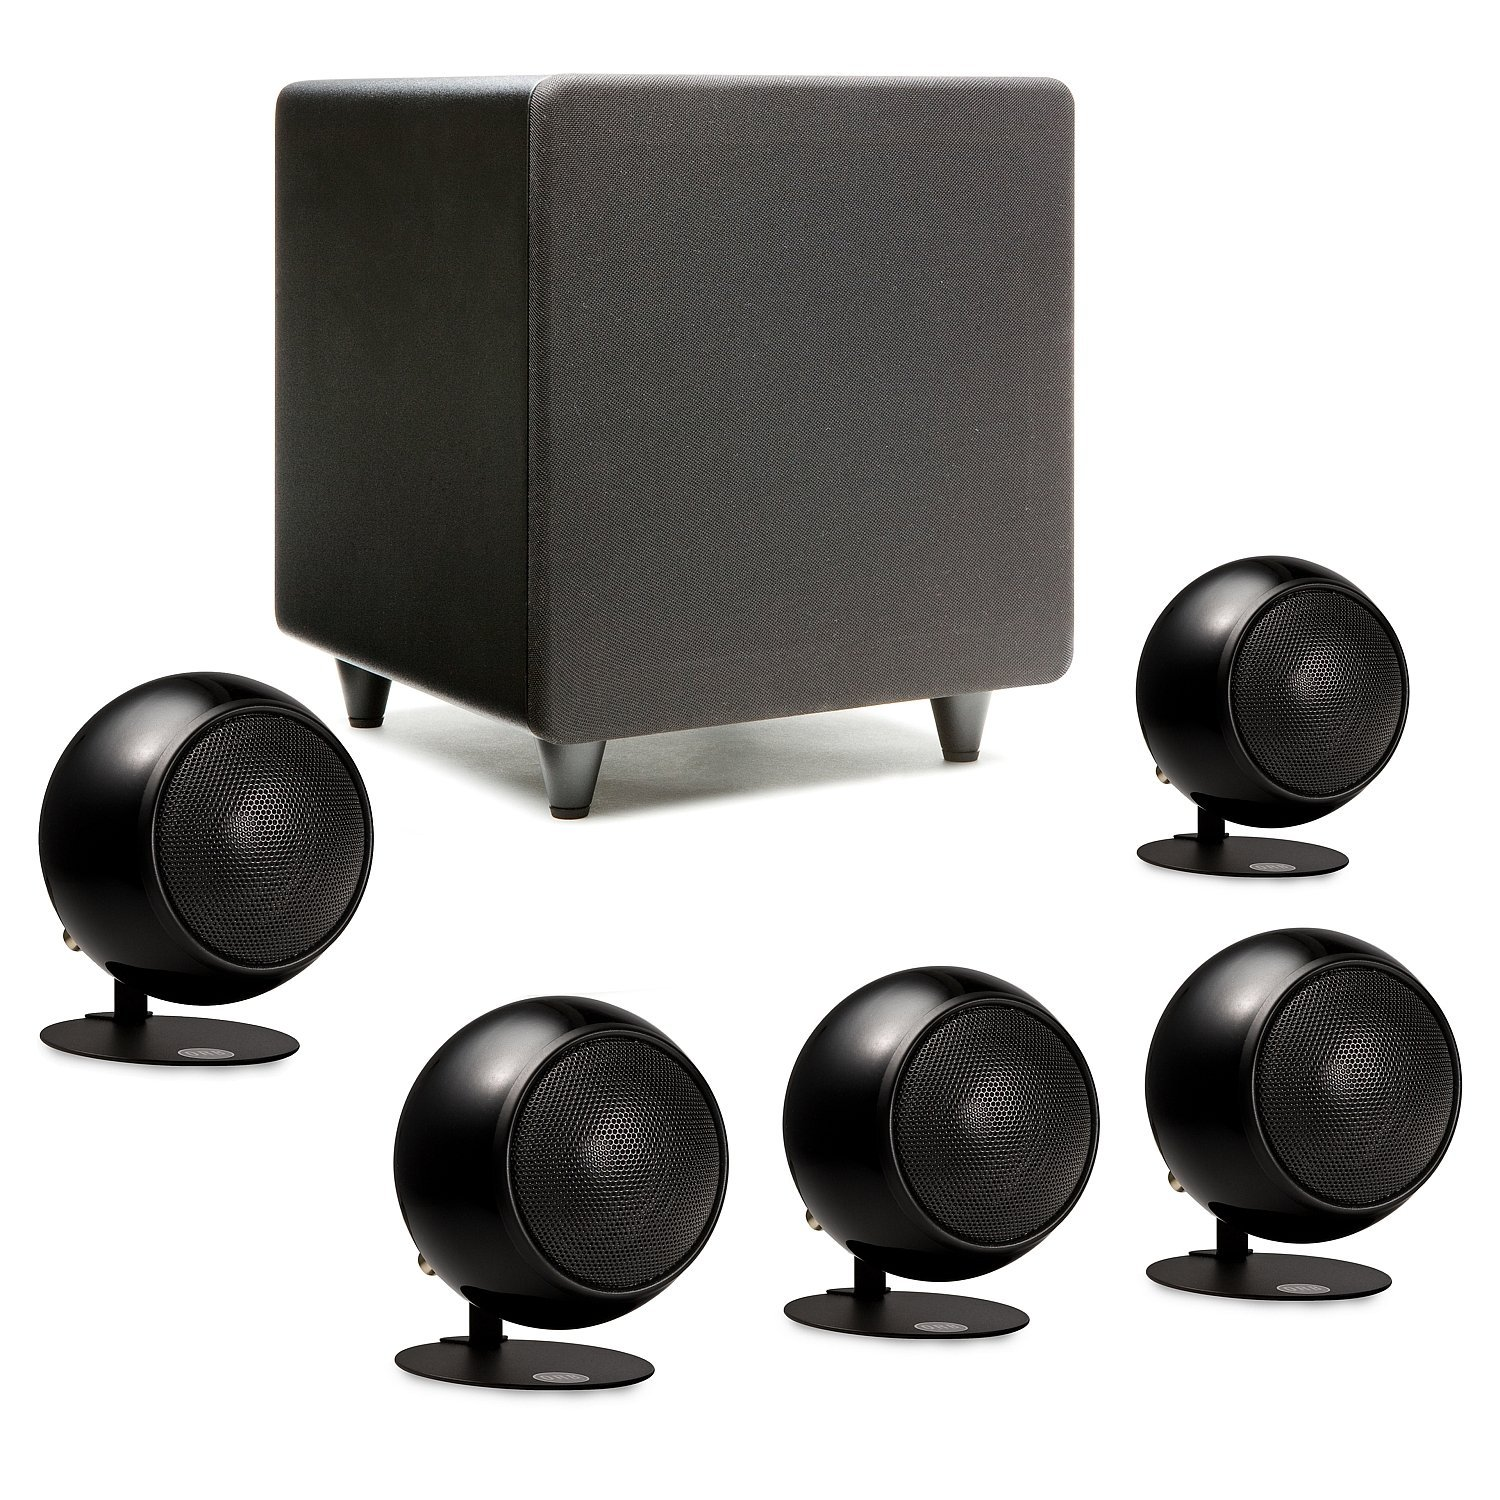 Top 3 Best Surround Sound System For Tv 2020 Review